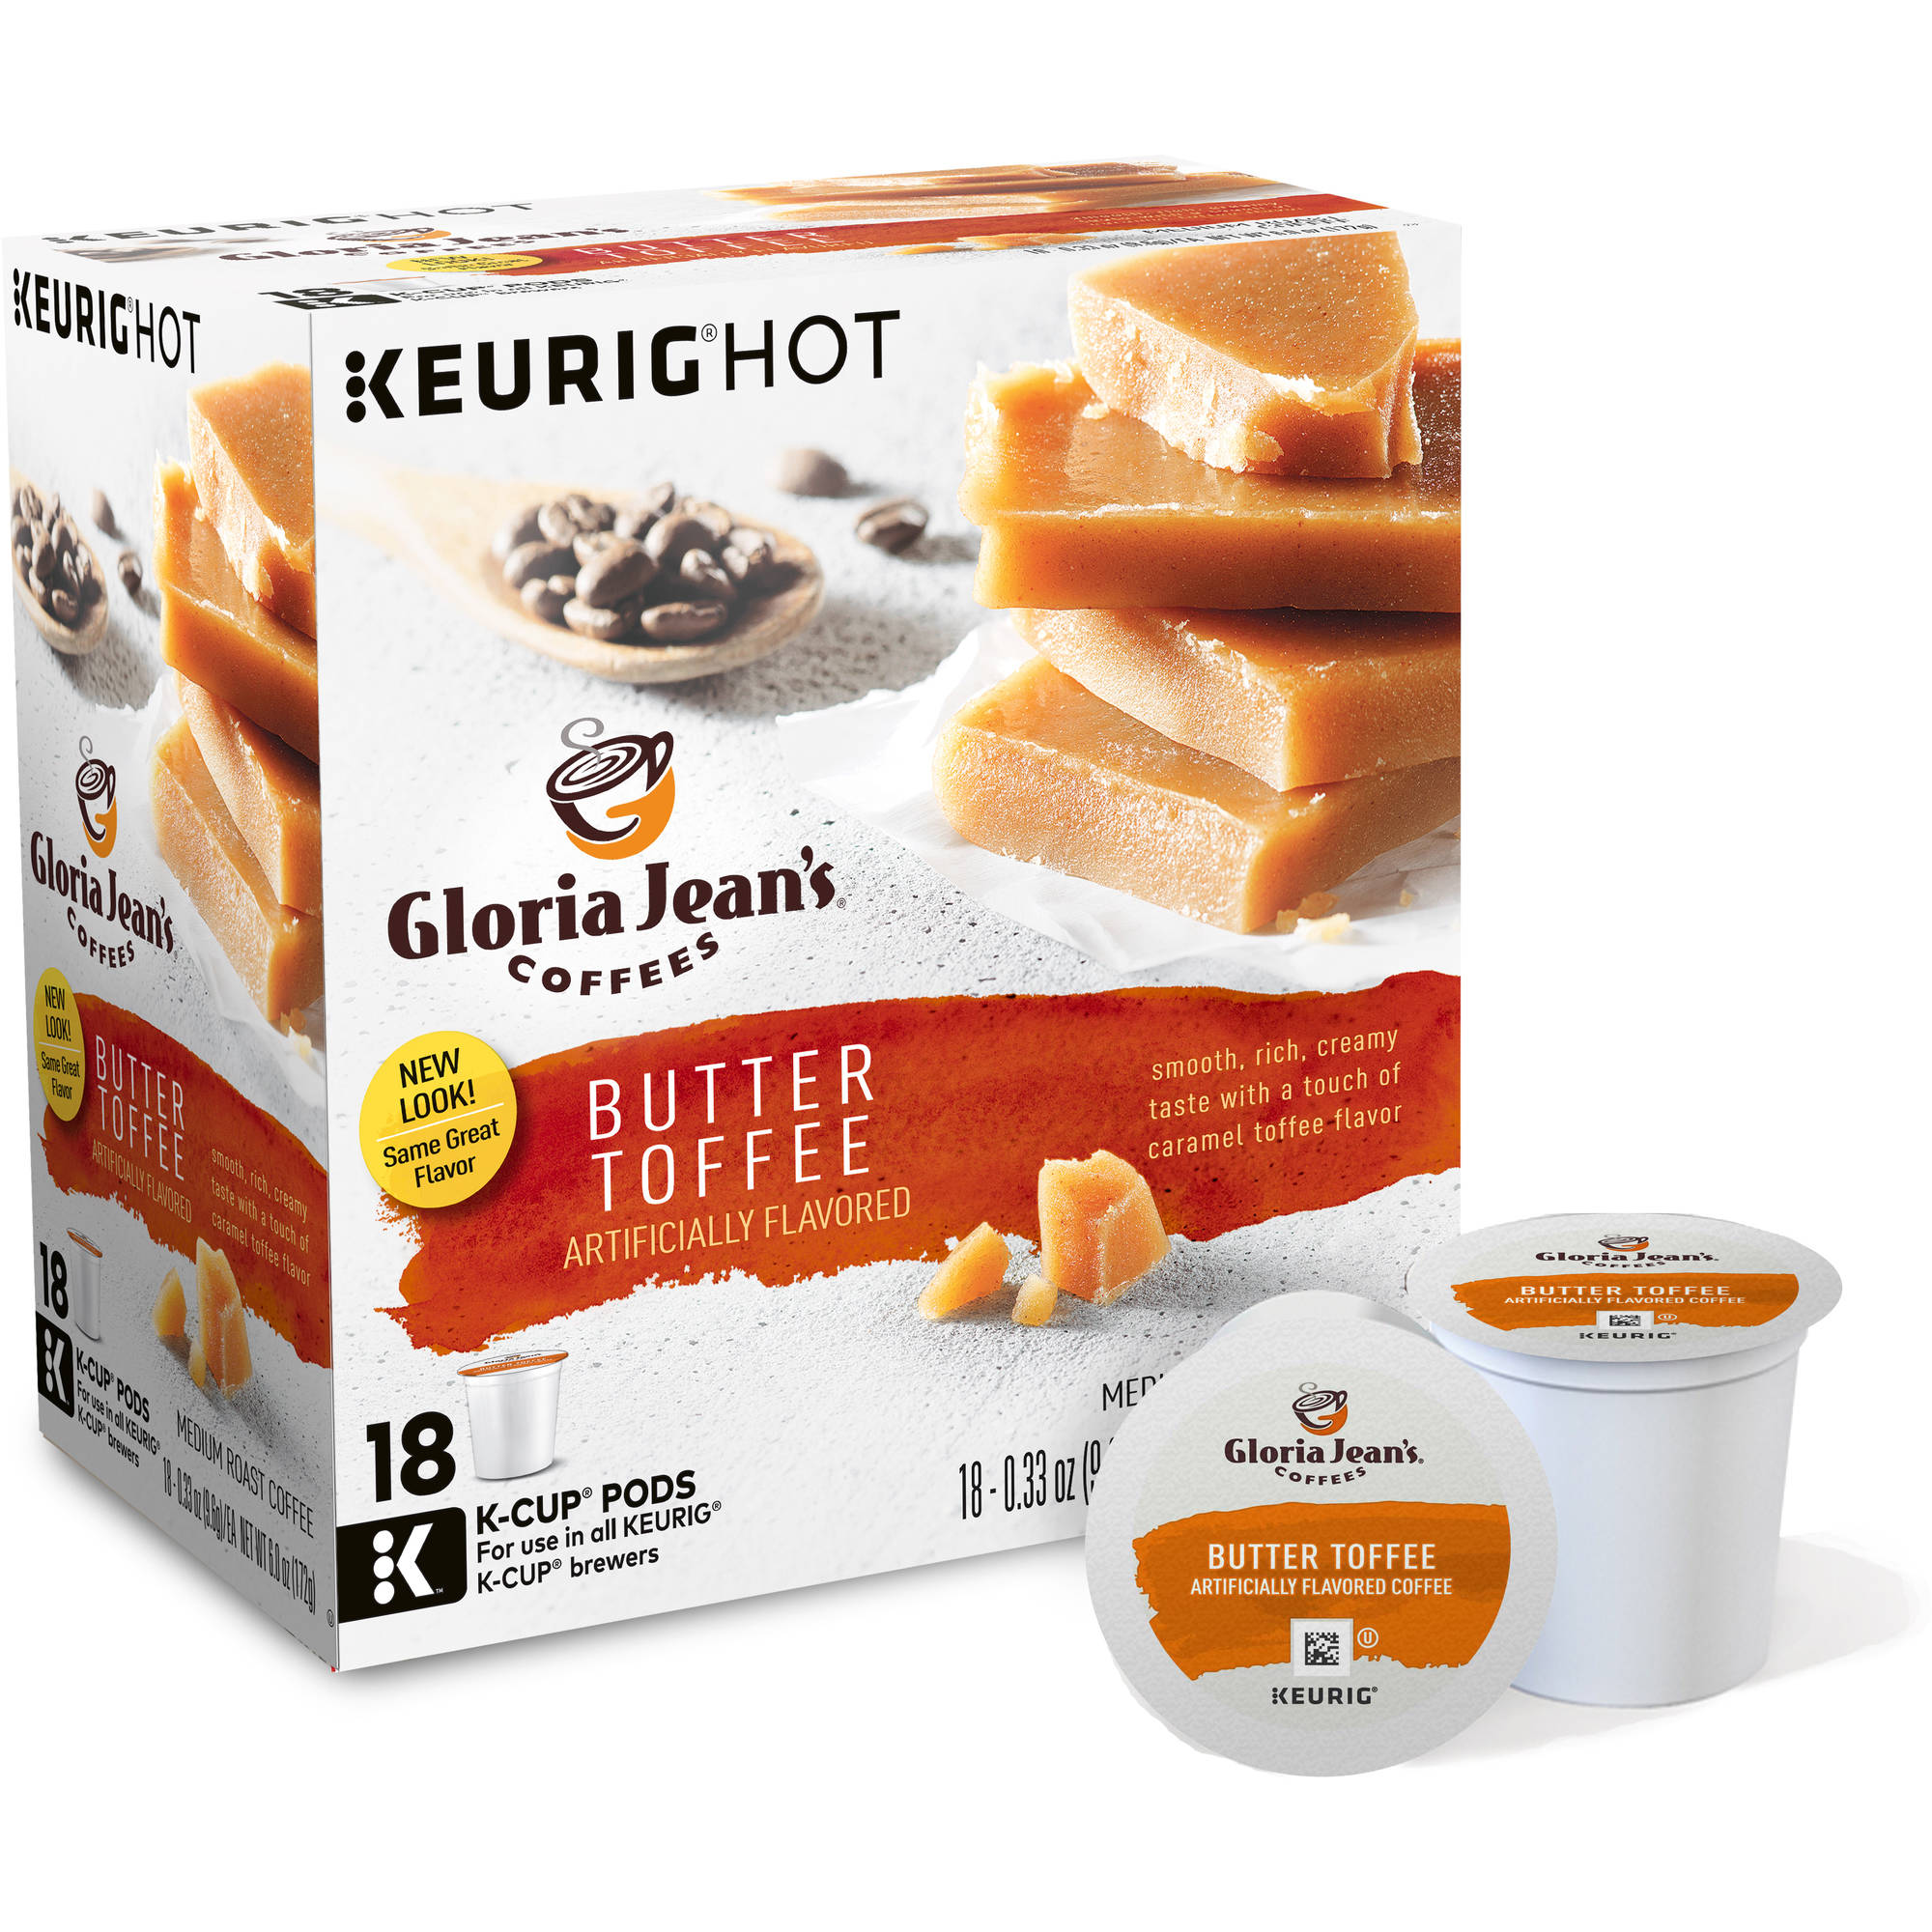 Keurig K-Cups, Gloria Jeans Butter Toffee Flavored Coffee, 18ct